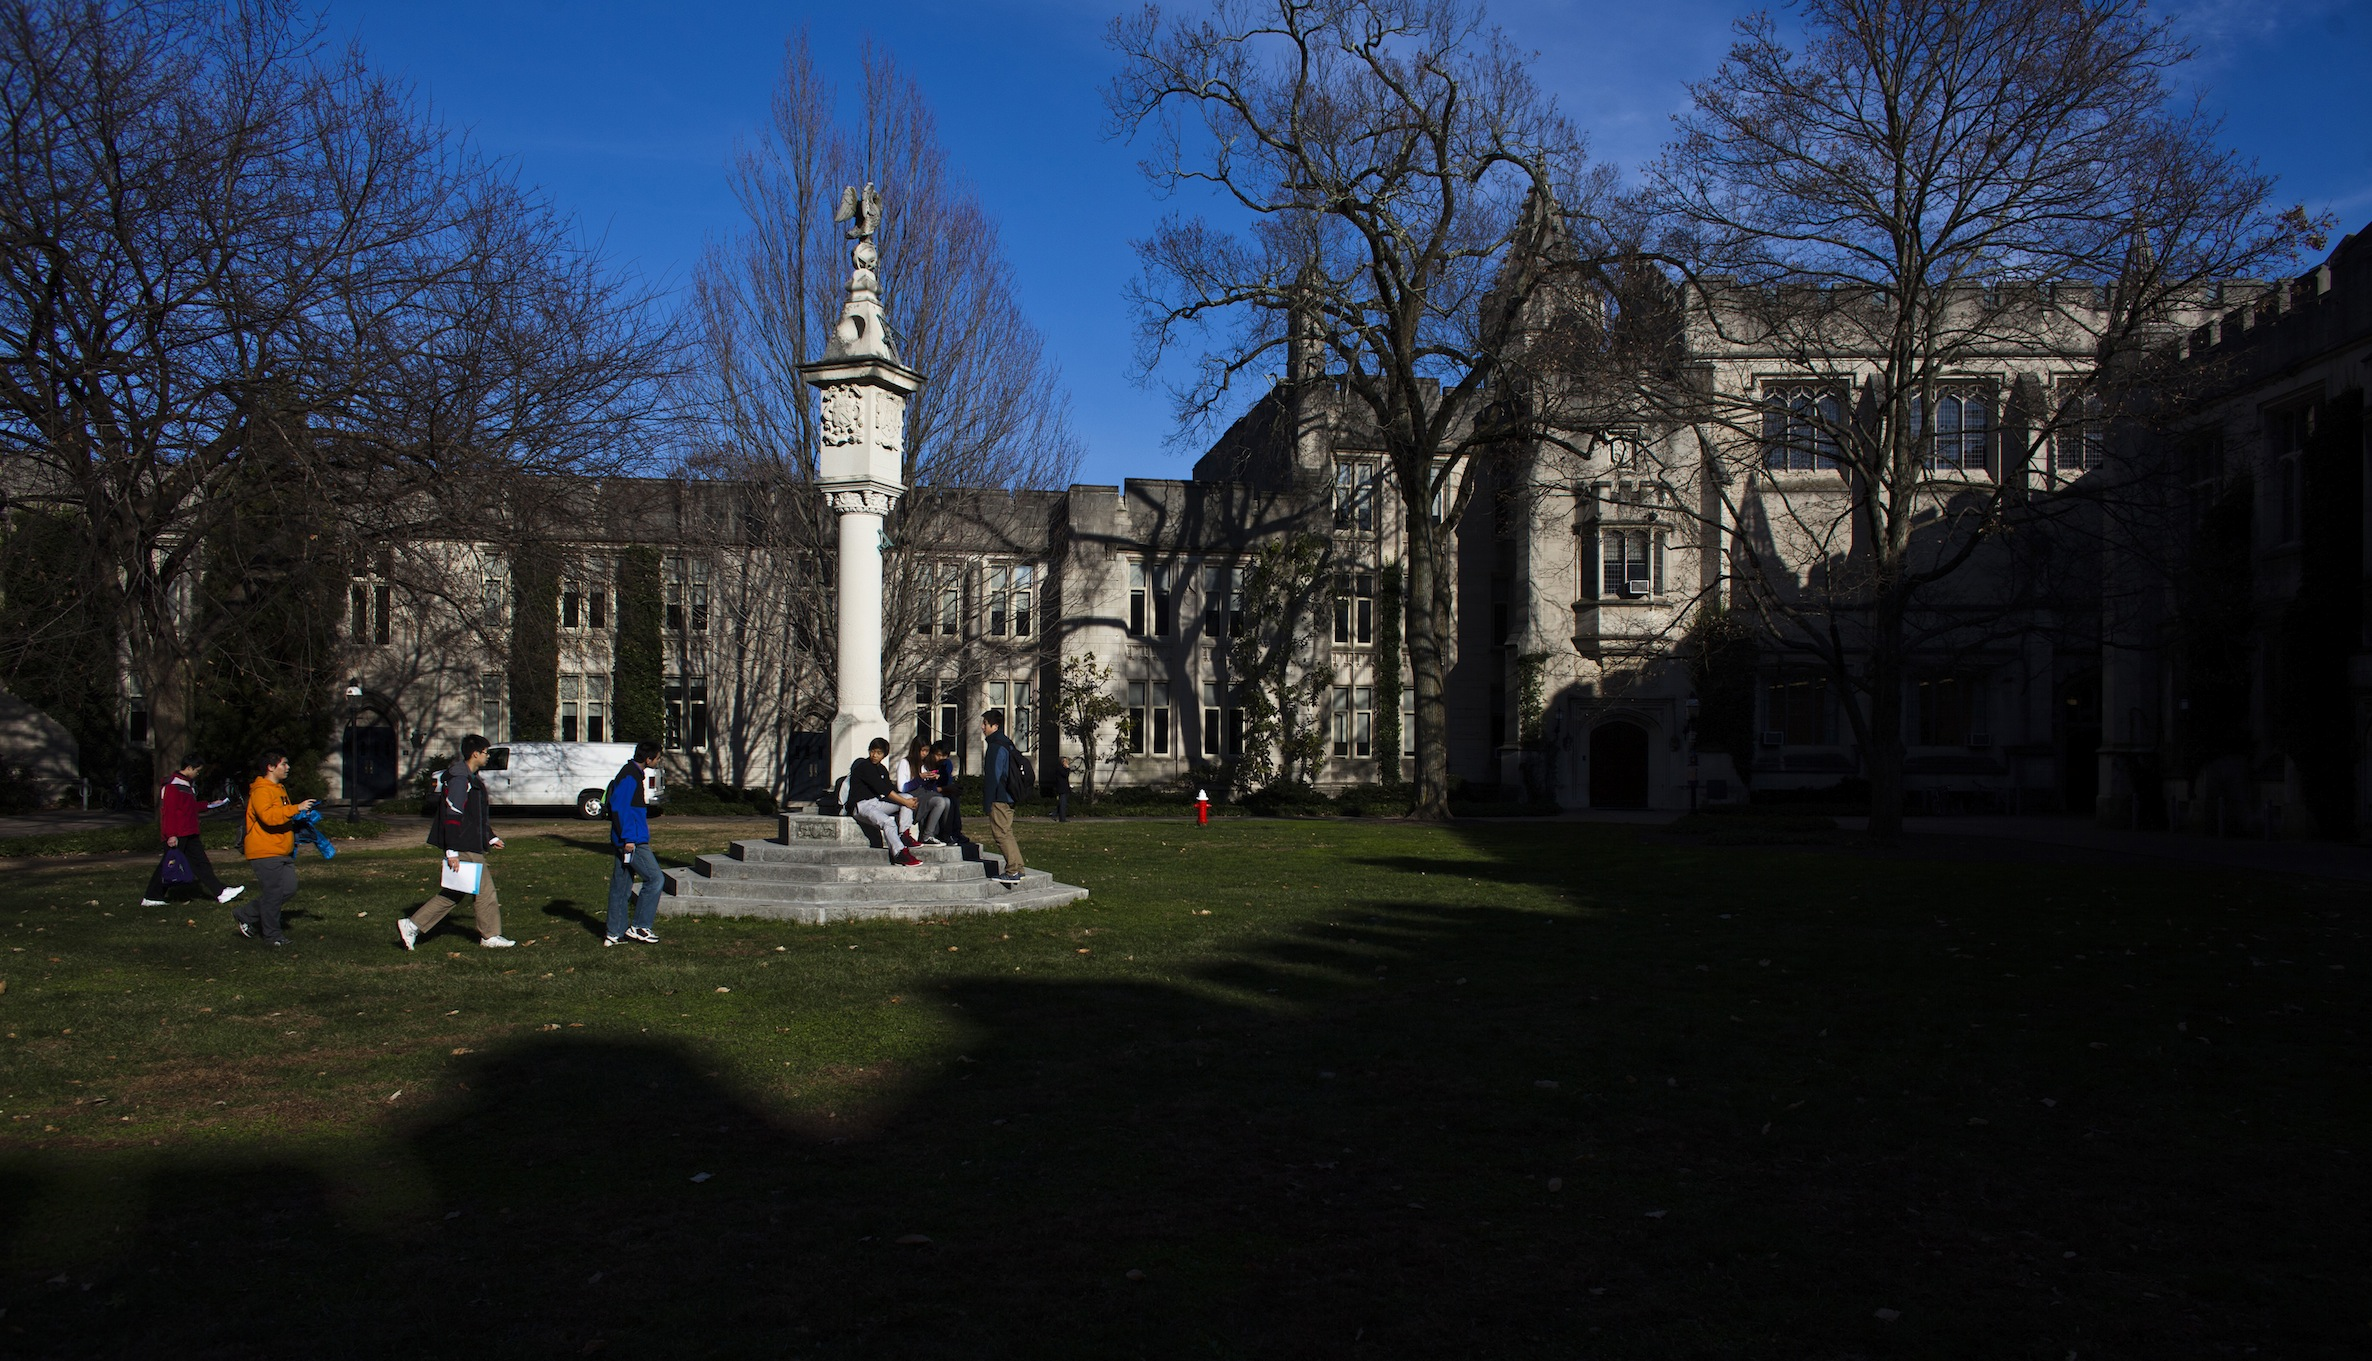 People walk around the Princeton University campus in New Jersey, November 16, 2013. A meningitis vaccine approved for use in Europe and Australia but not in the United States can be imported to try to stop an outbreak of the disease at Princeton University in New Jersey, federal health officials said. The Food and Drug Administration agreed this week to the importation of the vaccine, Bexsero, for potential use on the Ivy League campus, Barbara Reynolds, a spokeswoman for the Centers for Disease Control and Prevention, said on Saturday. REUTERS/Eduardo Munoz (UNITED STATES - Tags: SOCIETY EDUCATION HEALTH) - RTX15GEN